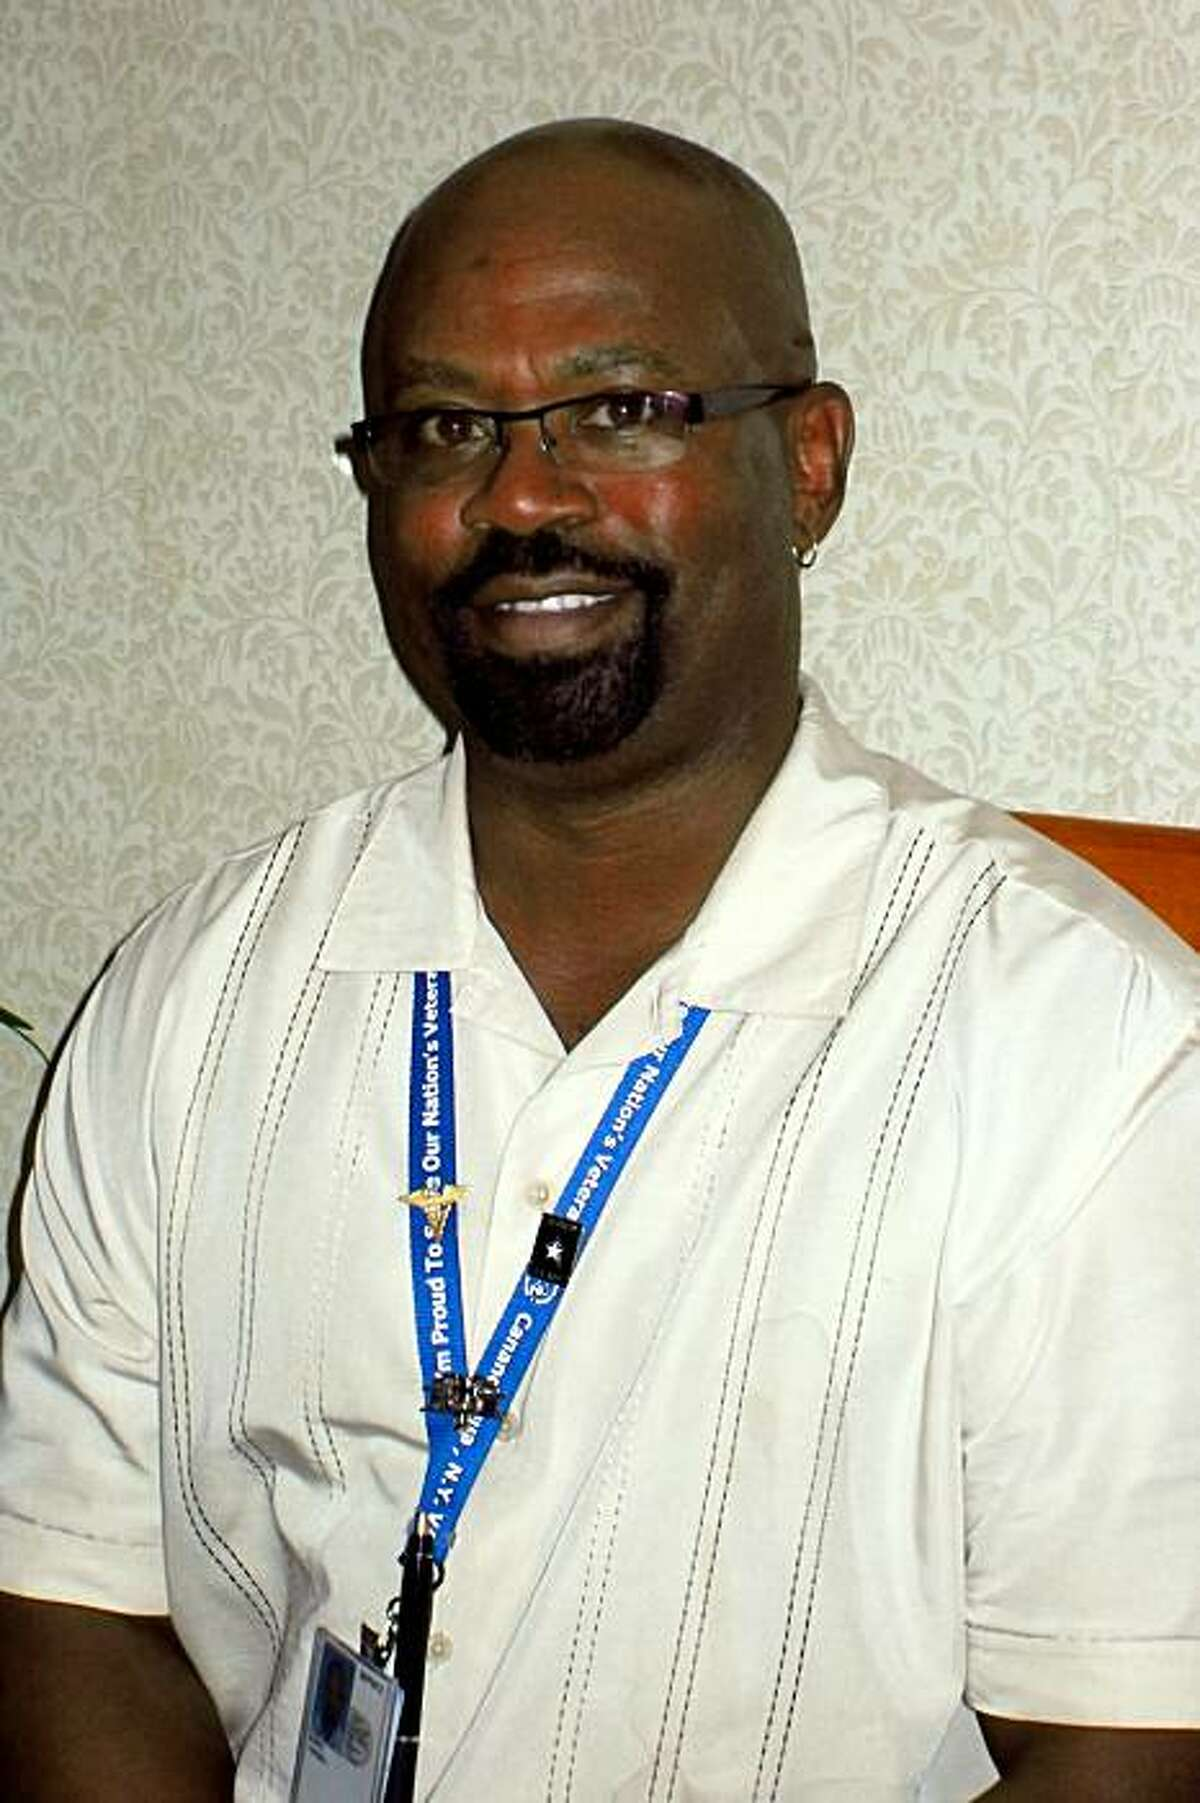 Tyrone Banks, a former Army medic who helped rescue Carol Dickinson in the Marina District during the 1989 Loma Prieta earthquake.